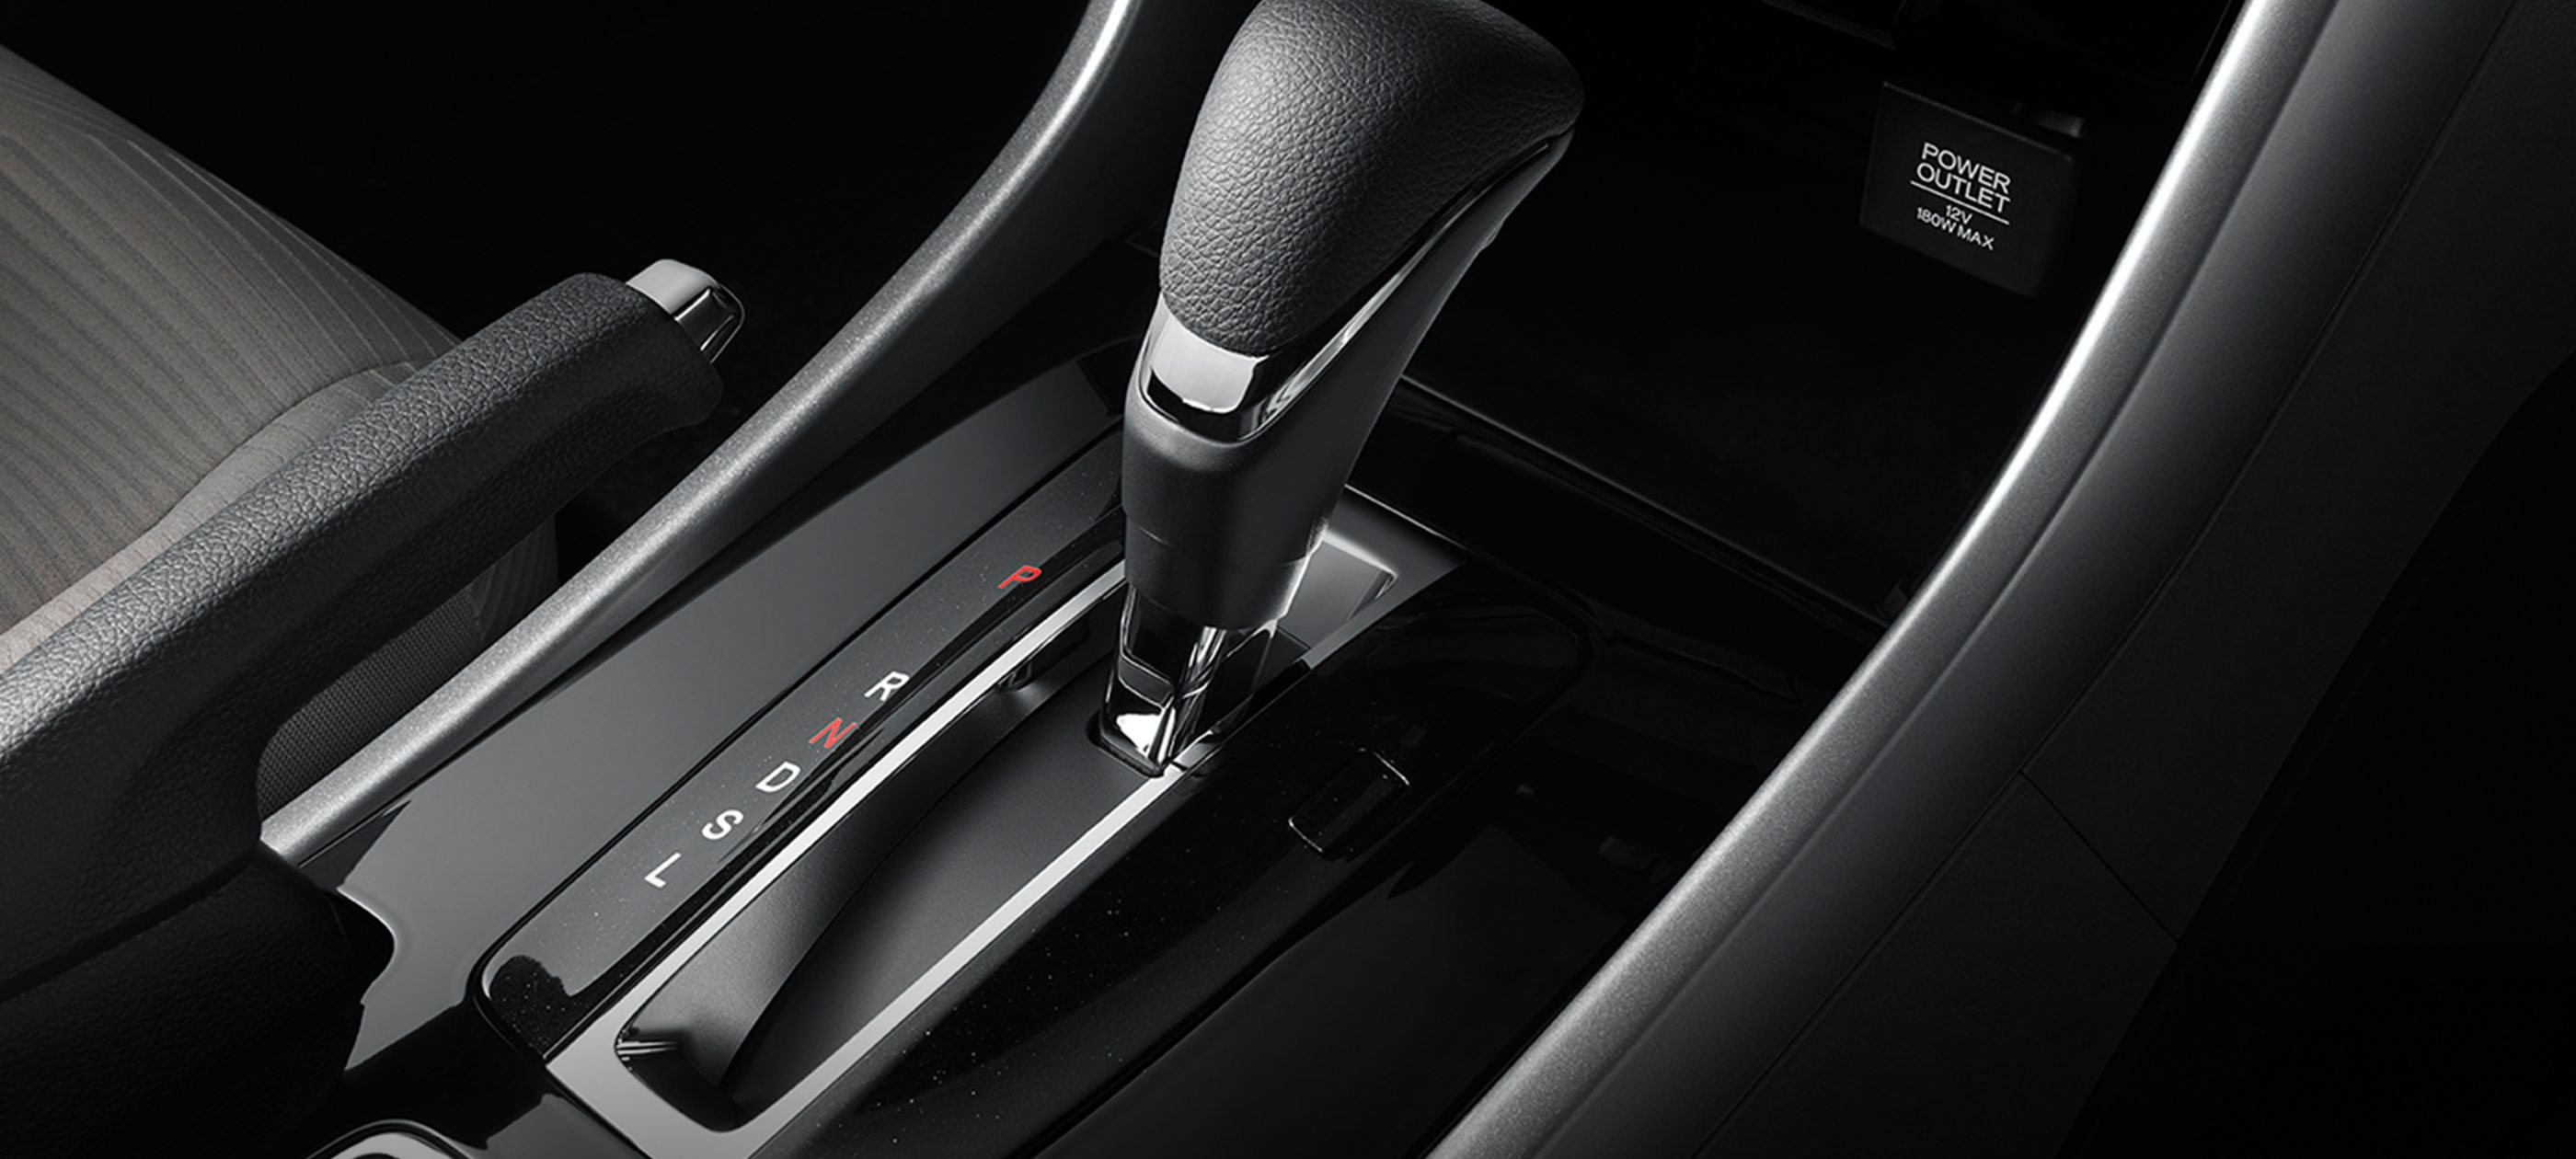 2017-accord-coupe-lx-int-detail-shot-gear-shifter-1400-2x